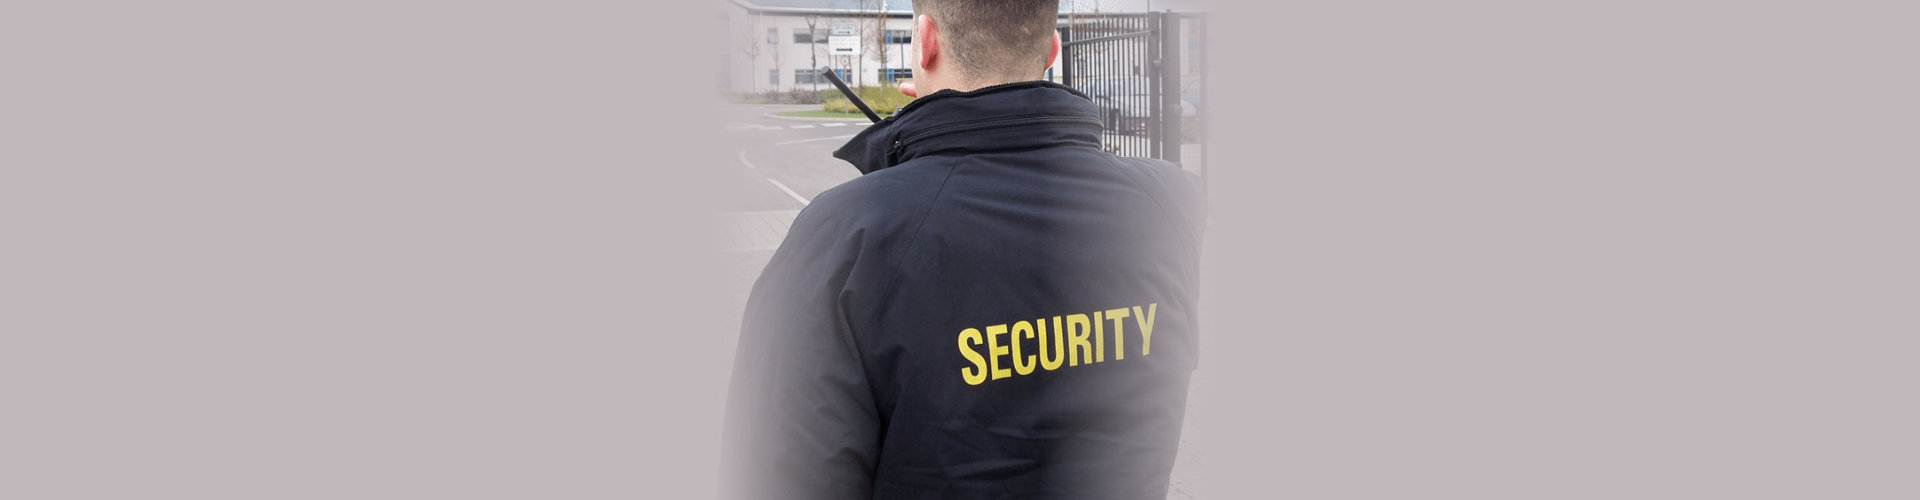 security calling